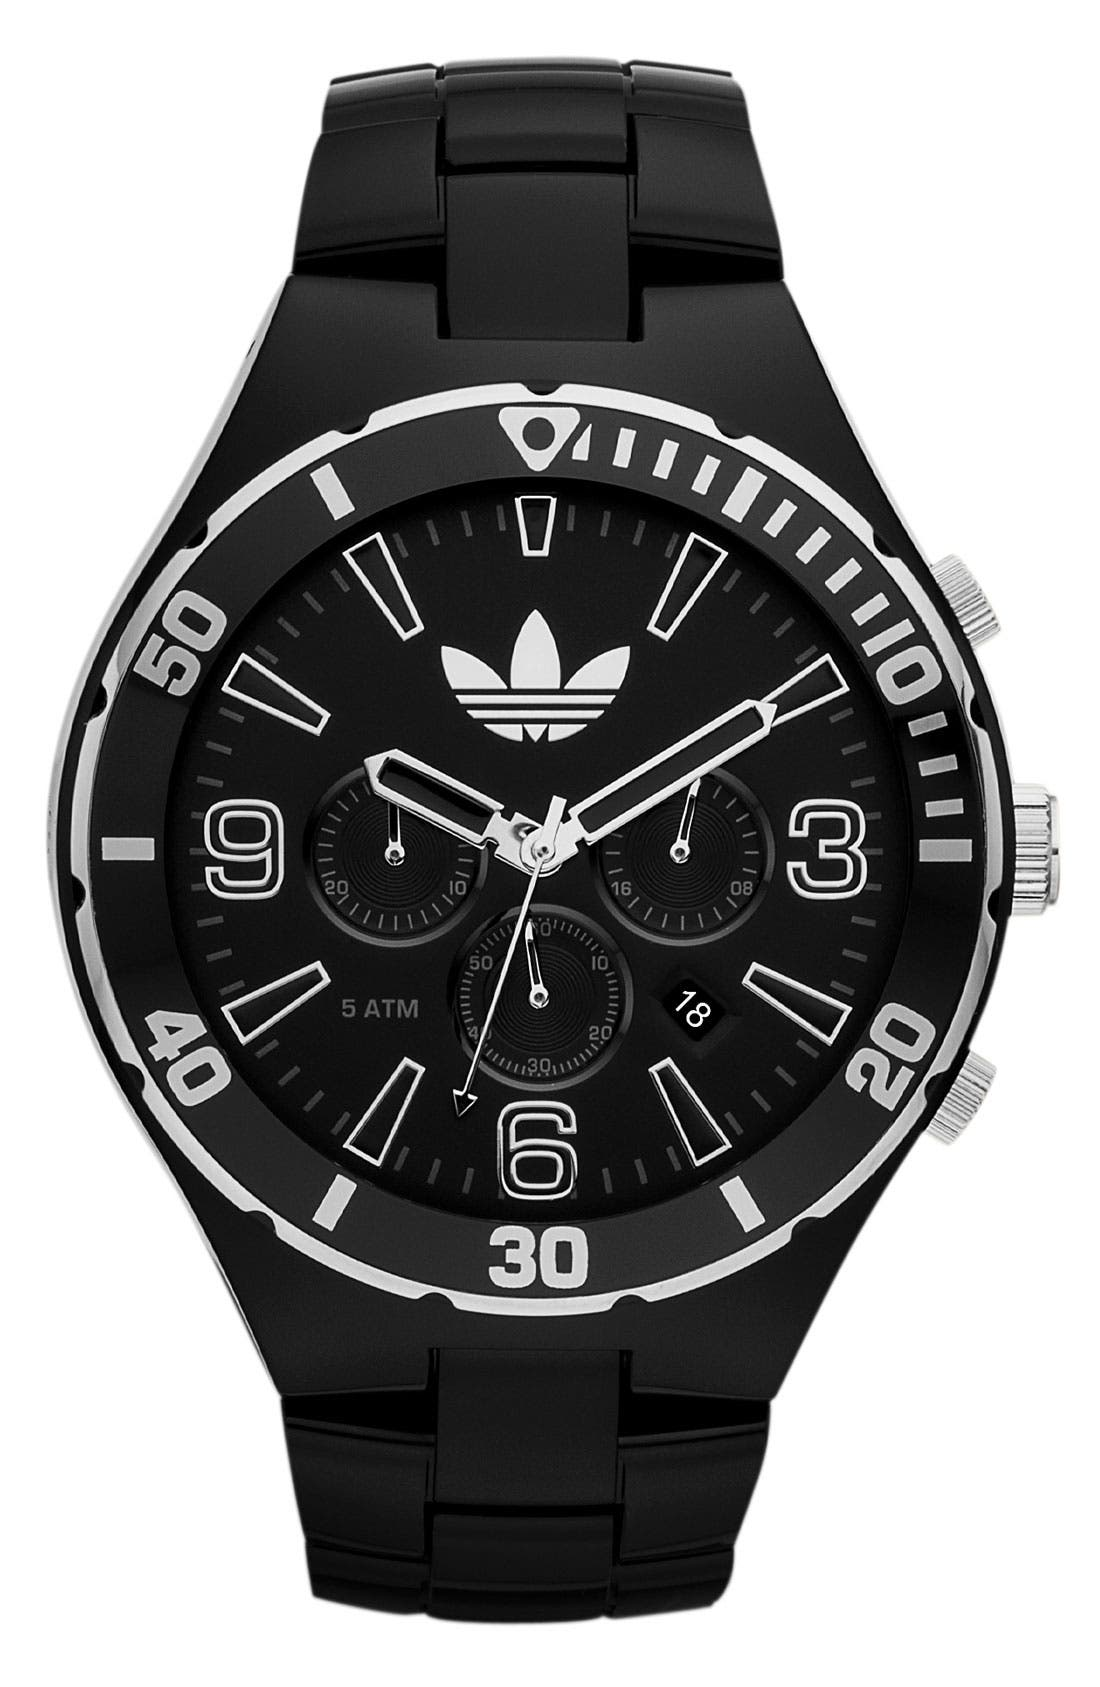 Main Image - adidas Originals 'Melbourne' Large Chronograph Bracelet Watch, 50mm